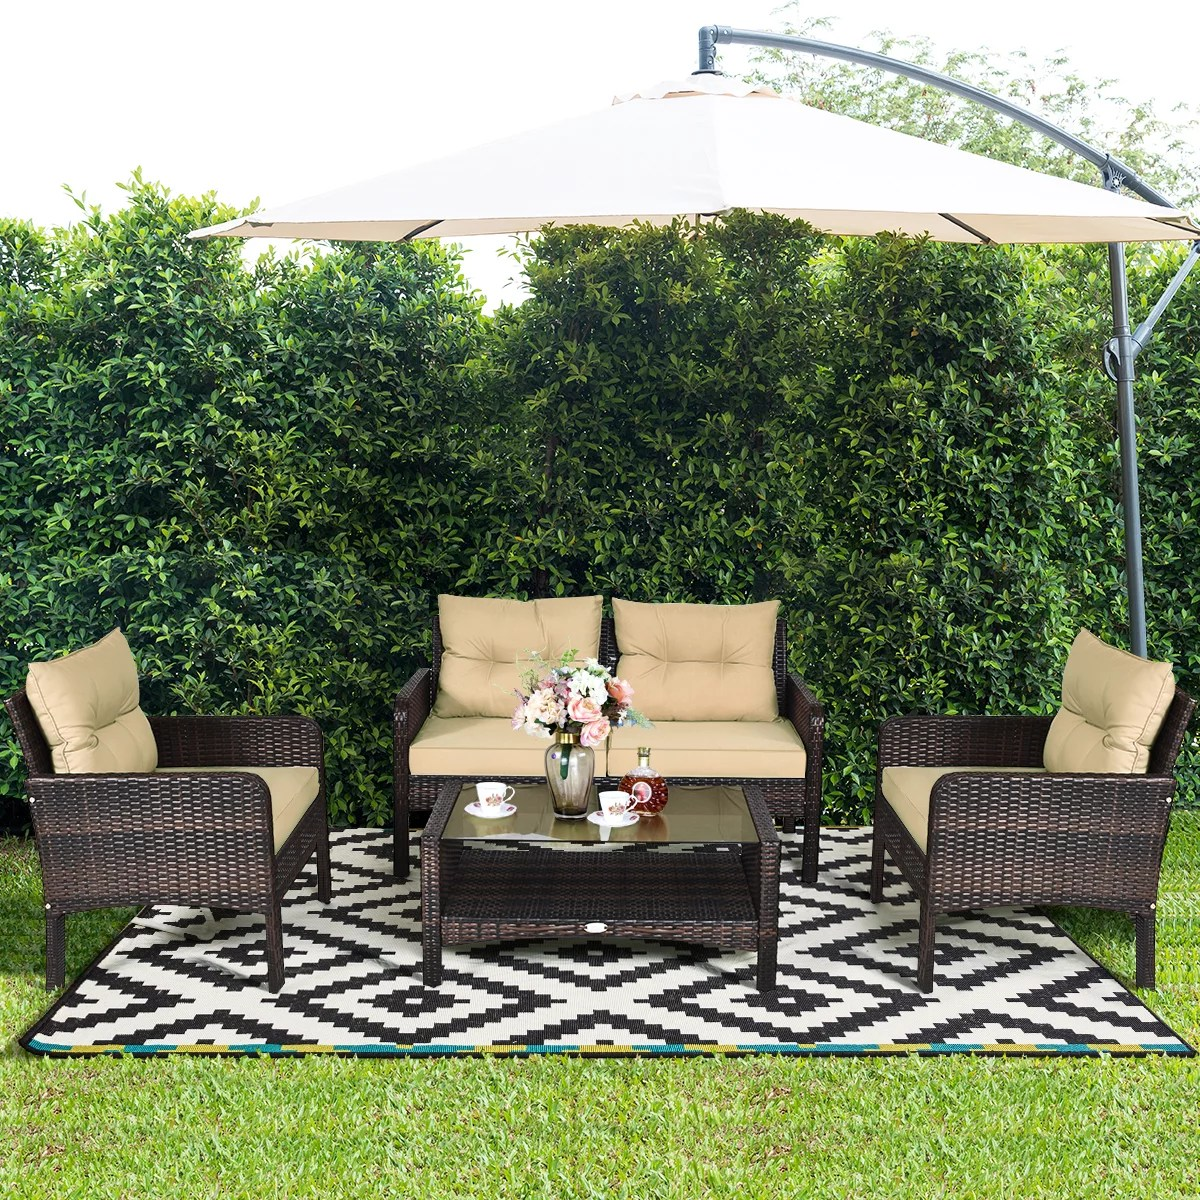 costway 4 pcs outdoor patio rattan wicker furniture set sofa loveseat with cushions